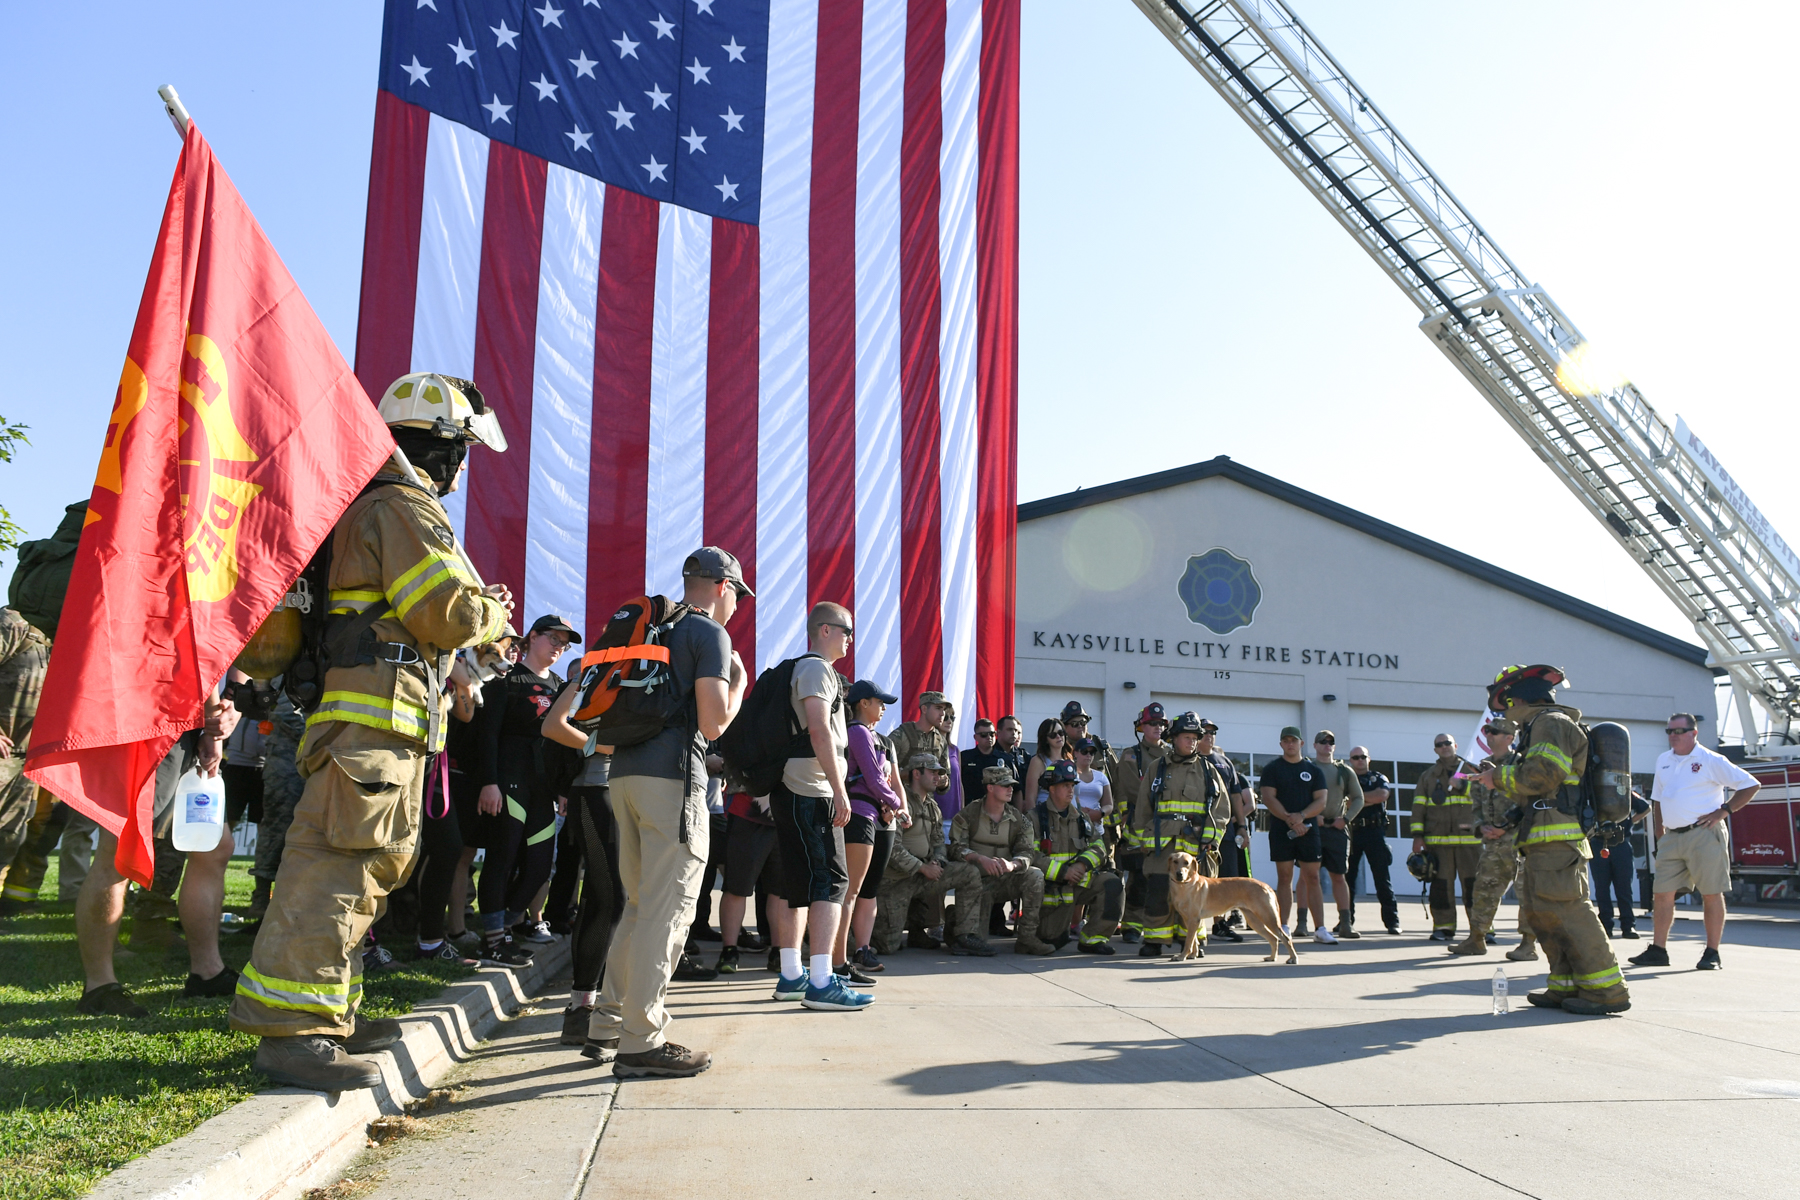 Staff Sgt. Caleb Saunders (far right), from the 775th Civil Engineering Squadron Fire Department, gives a reading about one of the 9/11 fallen at the Kaysville Fire Station during one of the stops of the 9/11 Memorial Ruck March. (Courtesy Hill Ail Force Base)